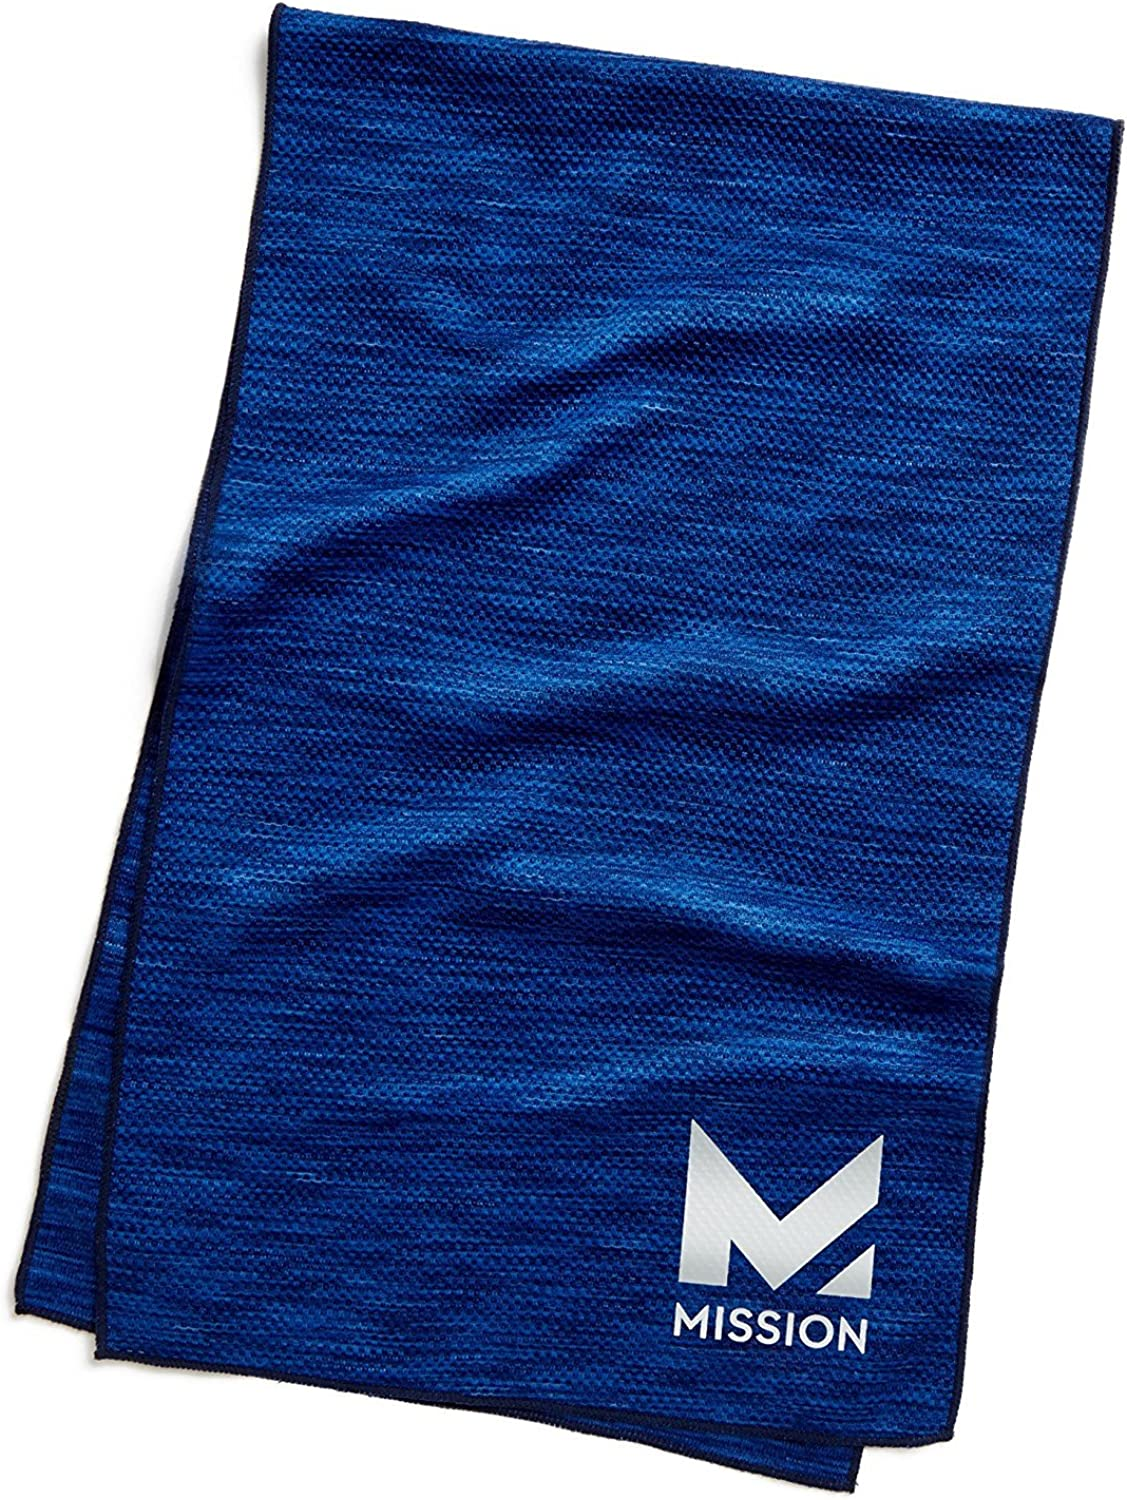 MISSION Premium Cooling Towel